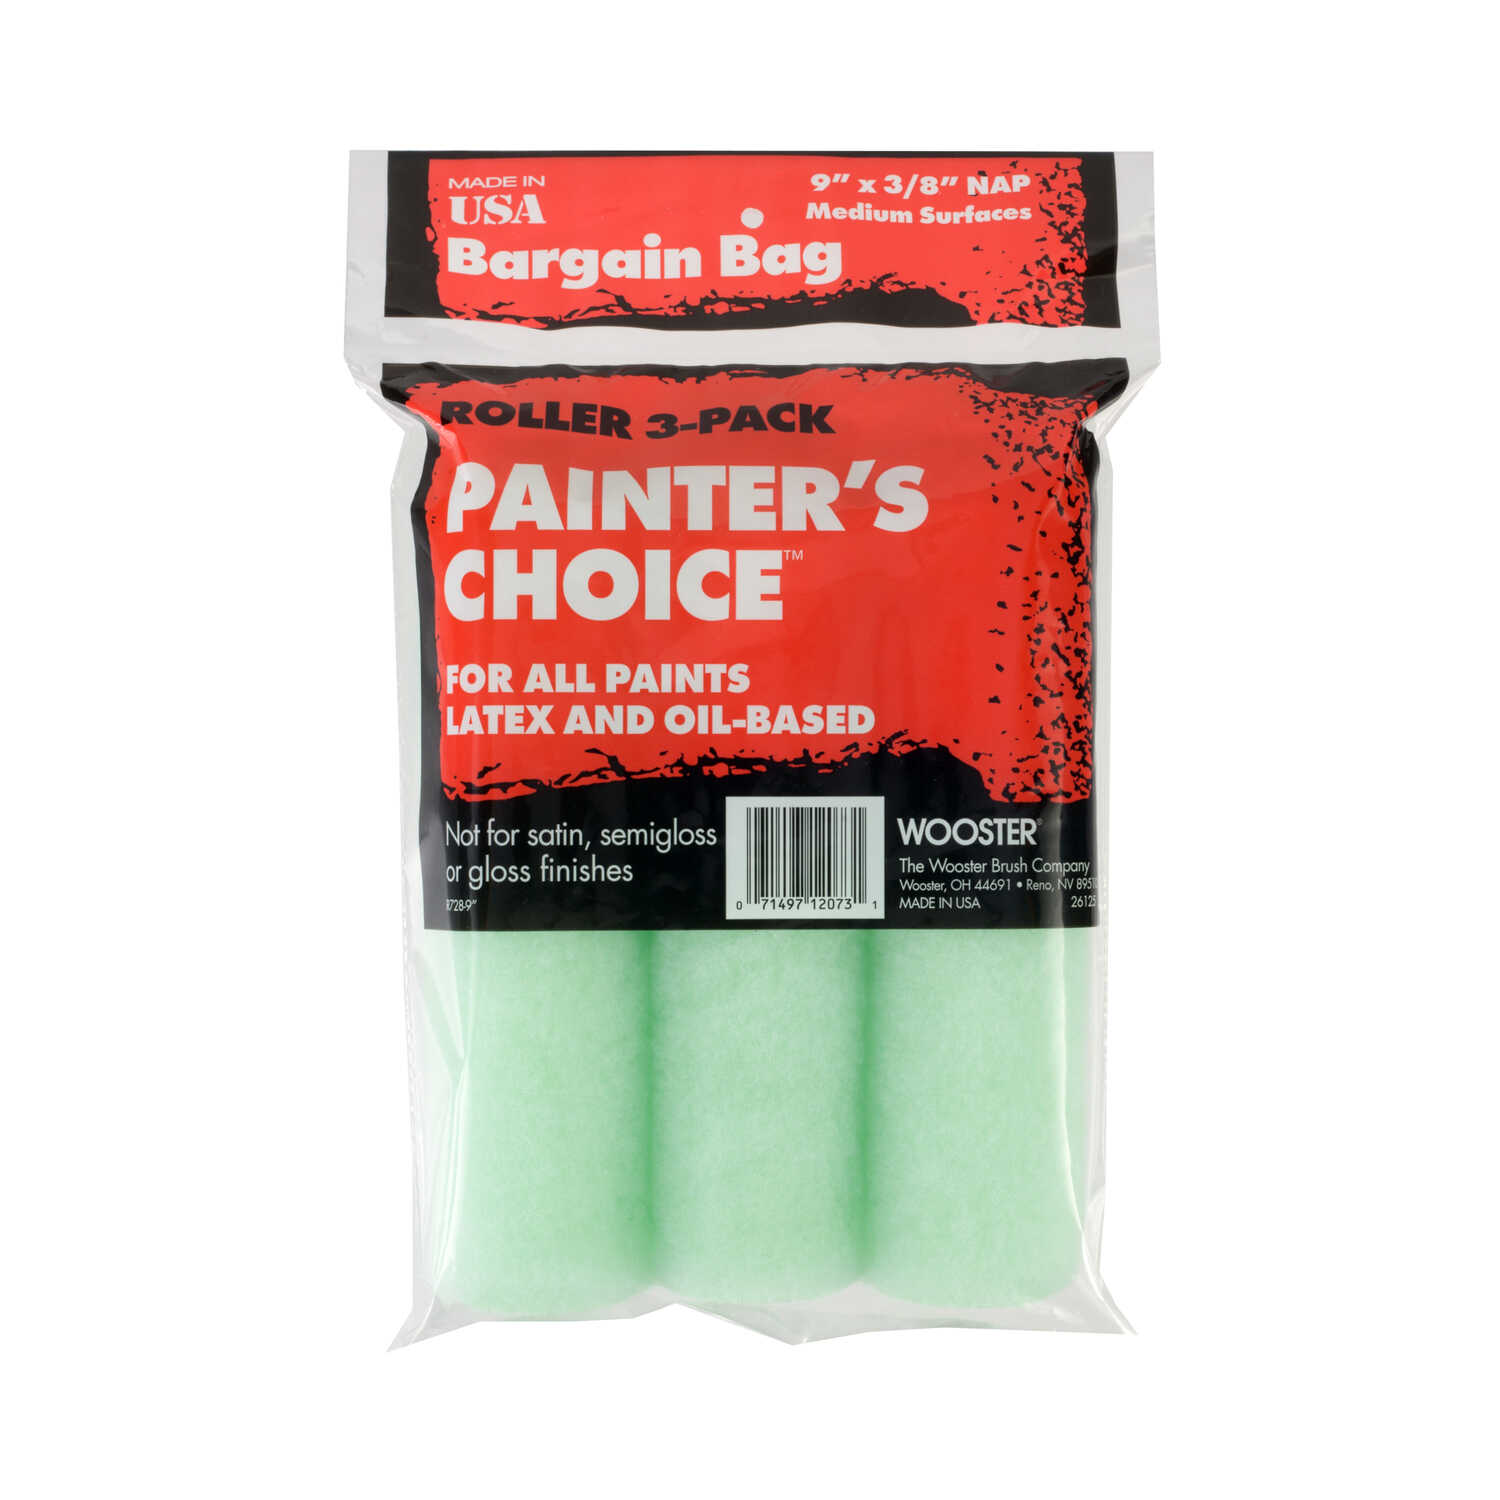 Wooster  Painter's Choice  Fabric  3/8 in.  x 9 in. W Paint Roller Cover  For Medium Surfaces 3 pk